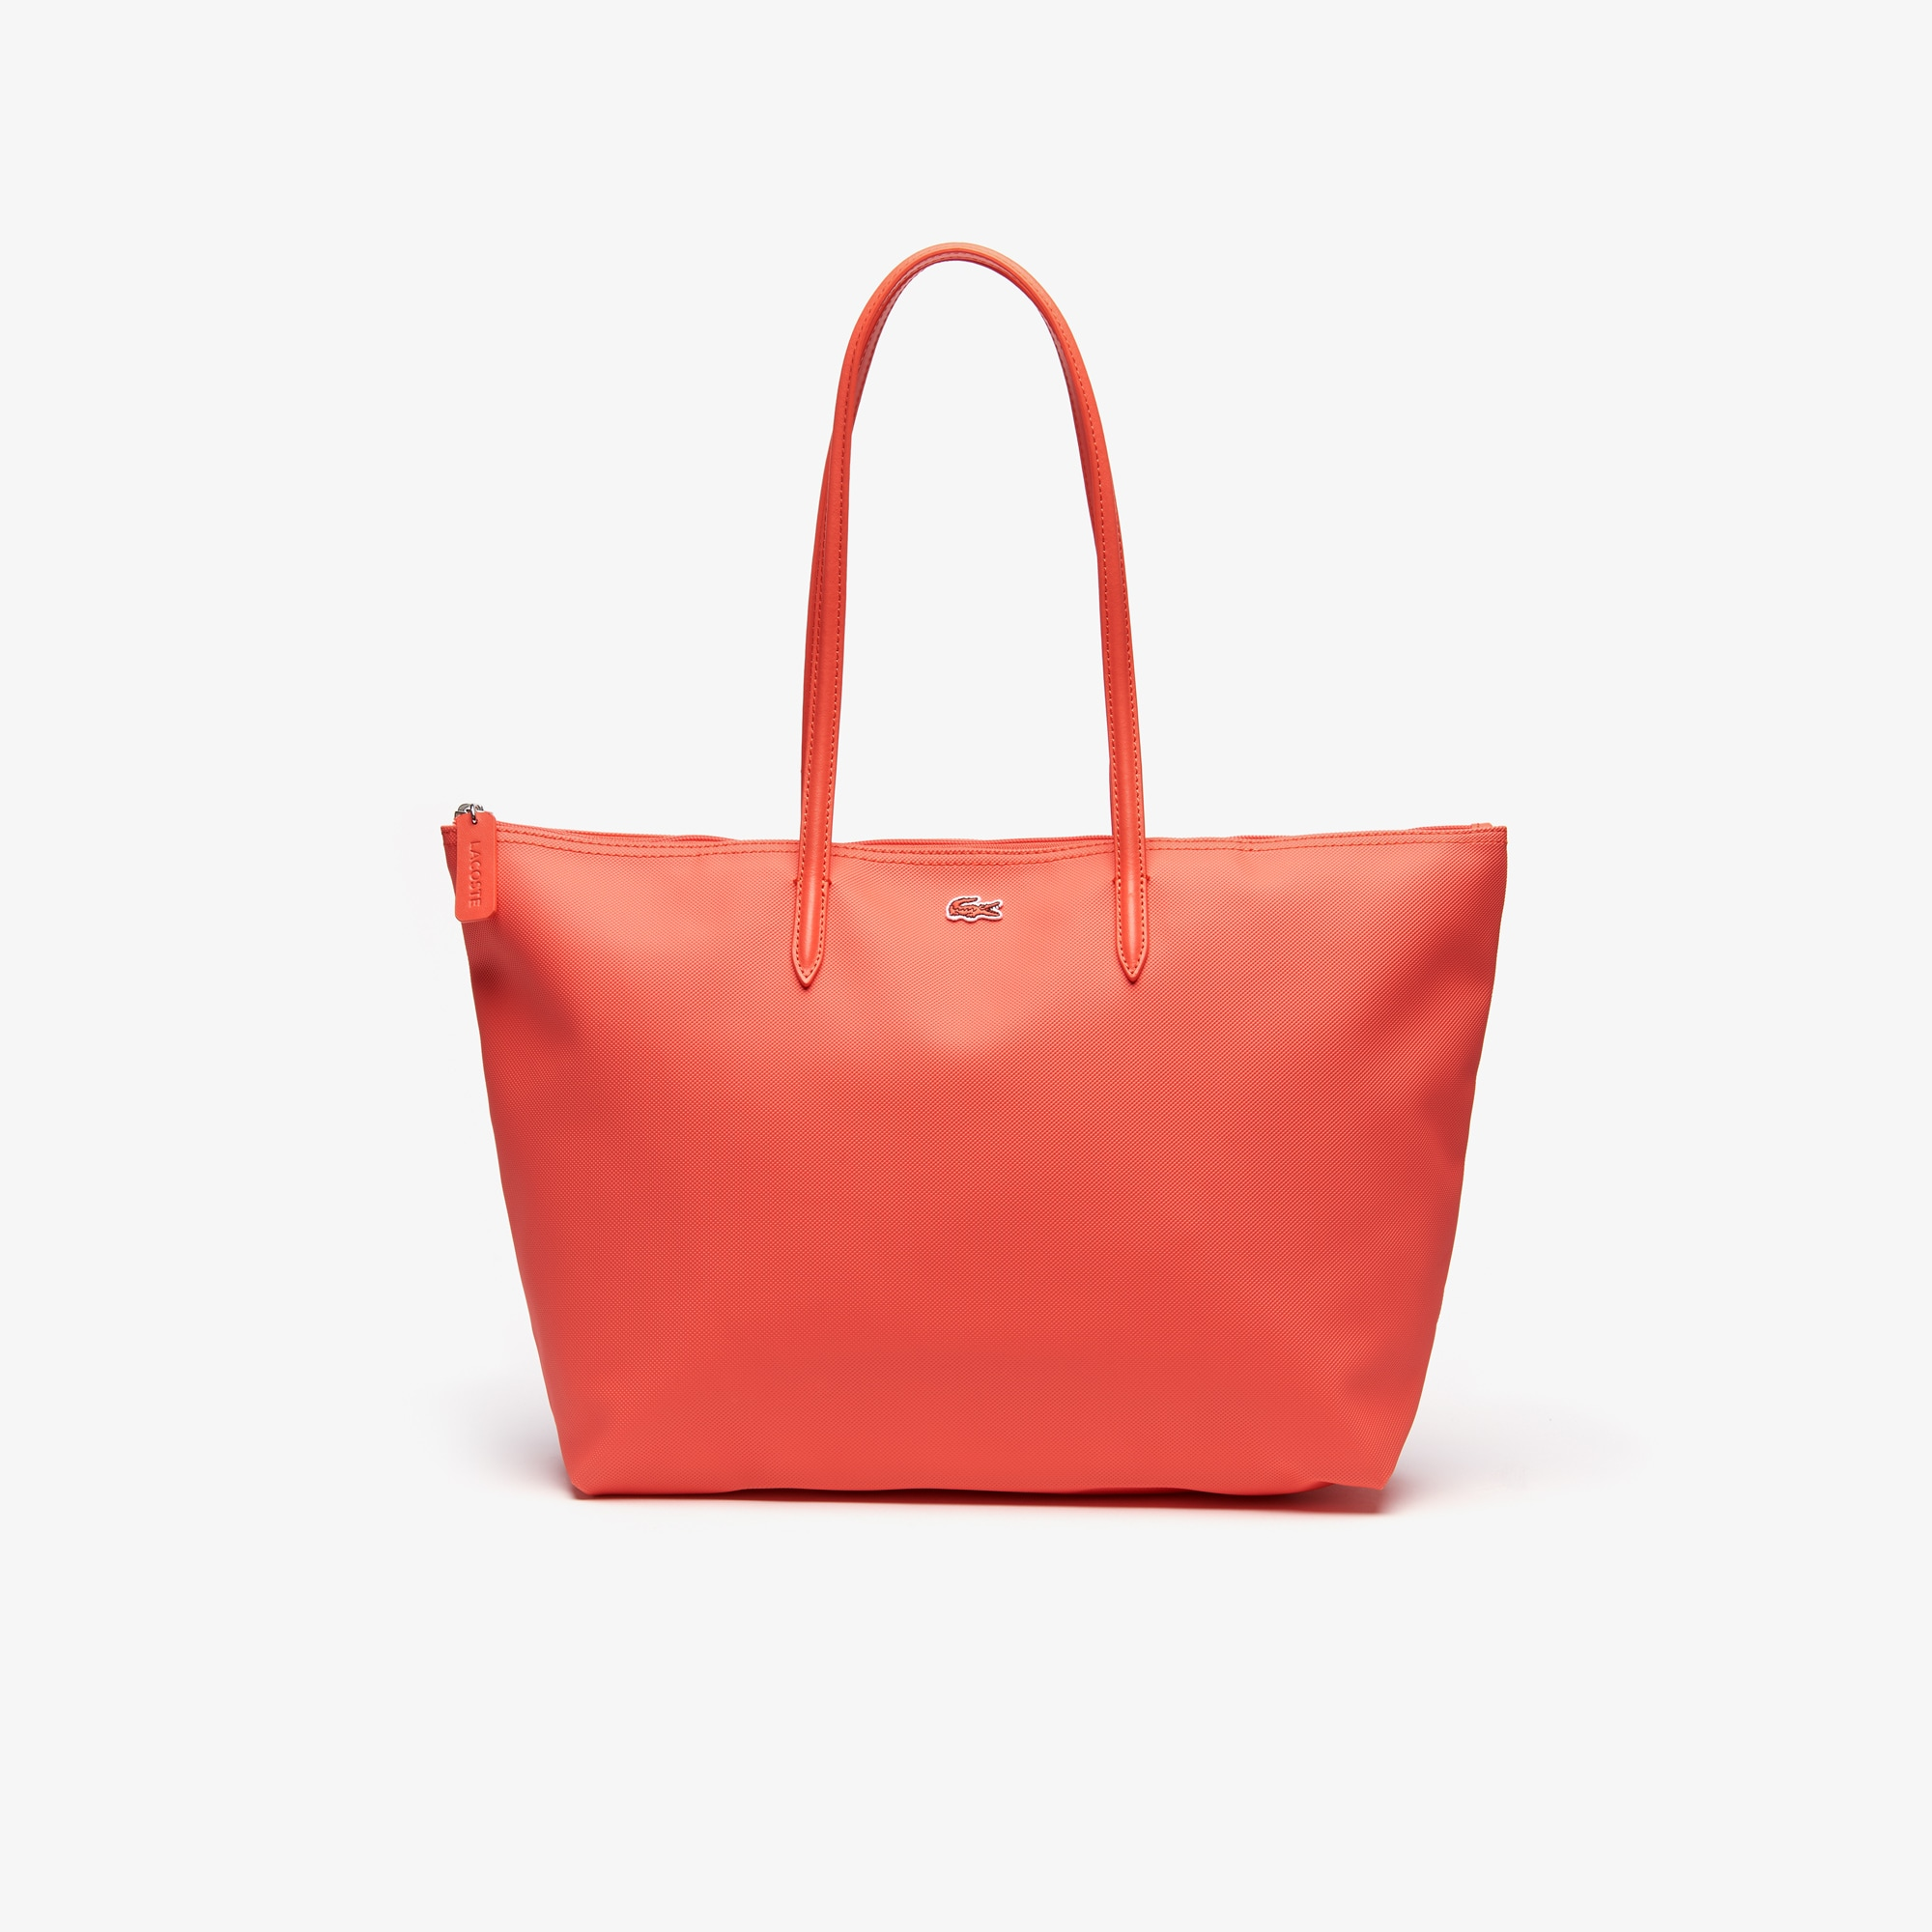 88534e58bf9 Bags & Handbags Collection | Women's Leather Goods | LACOSTE